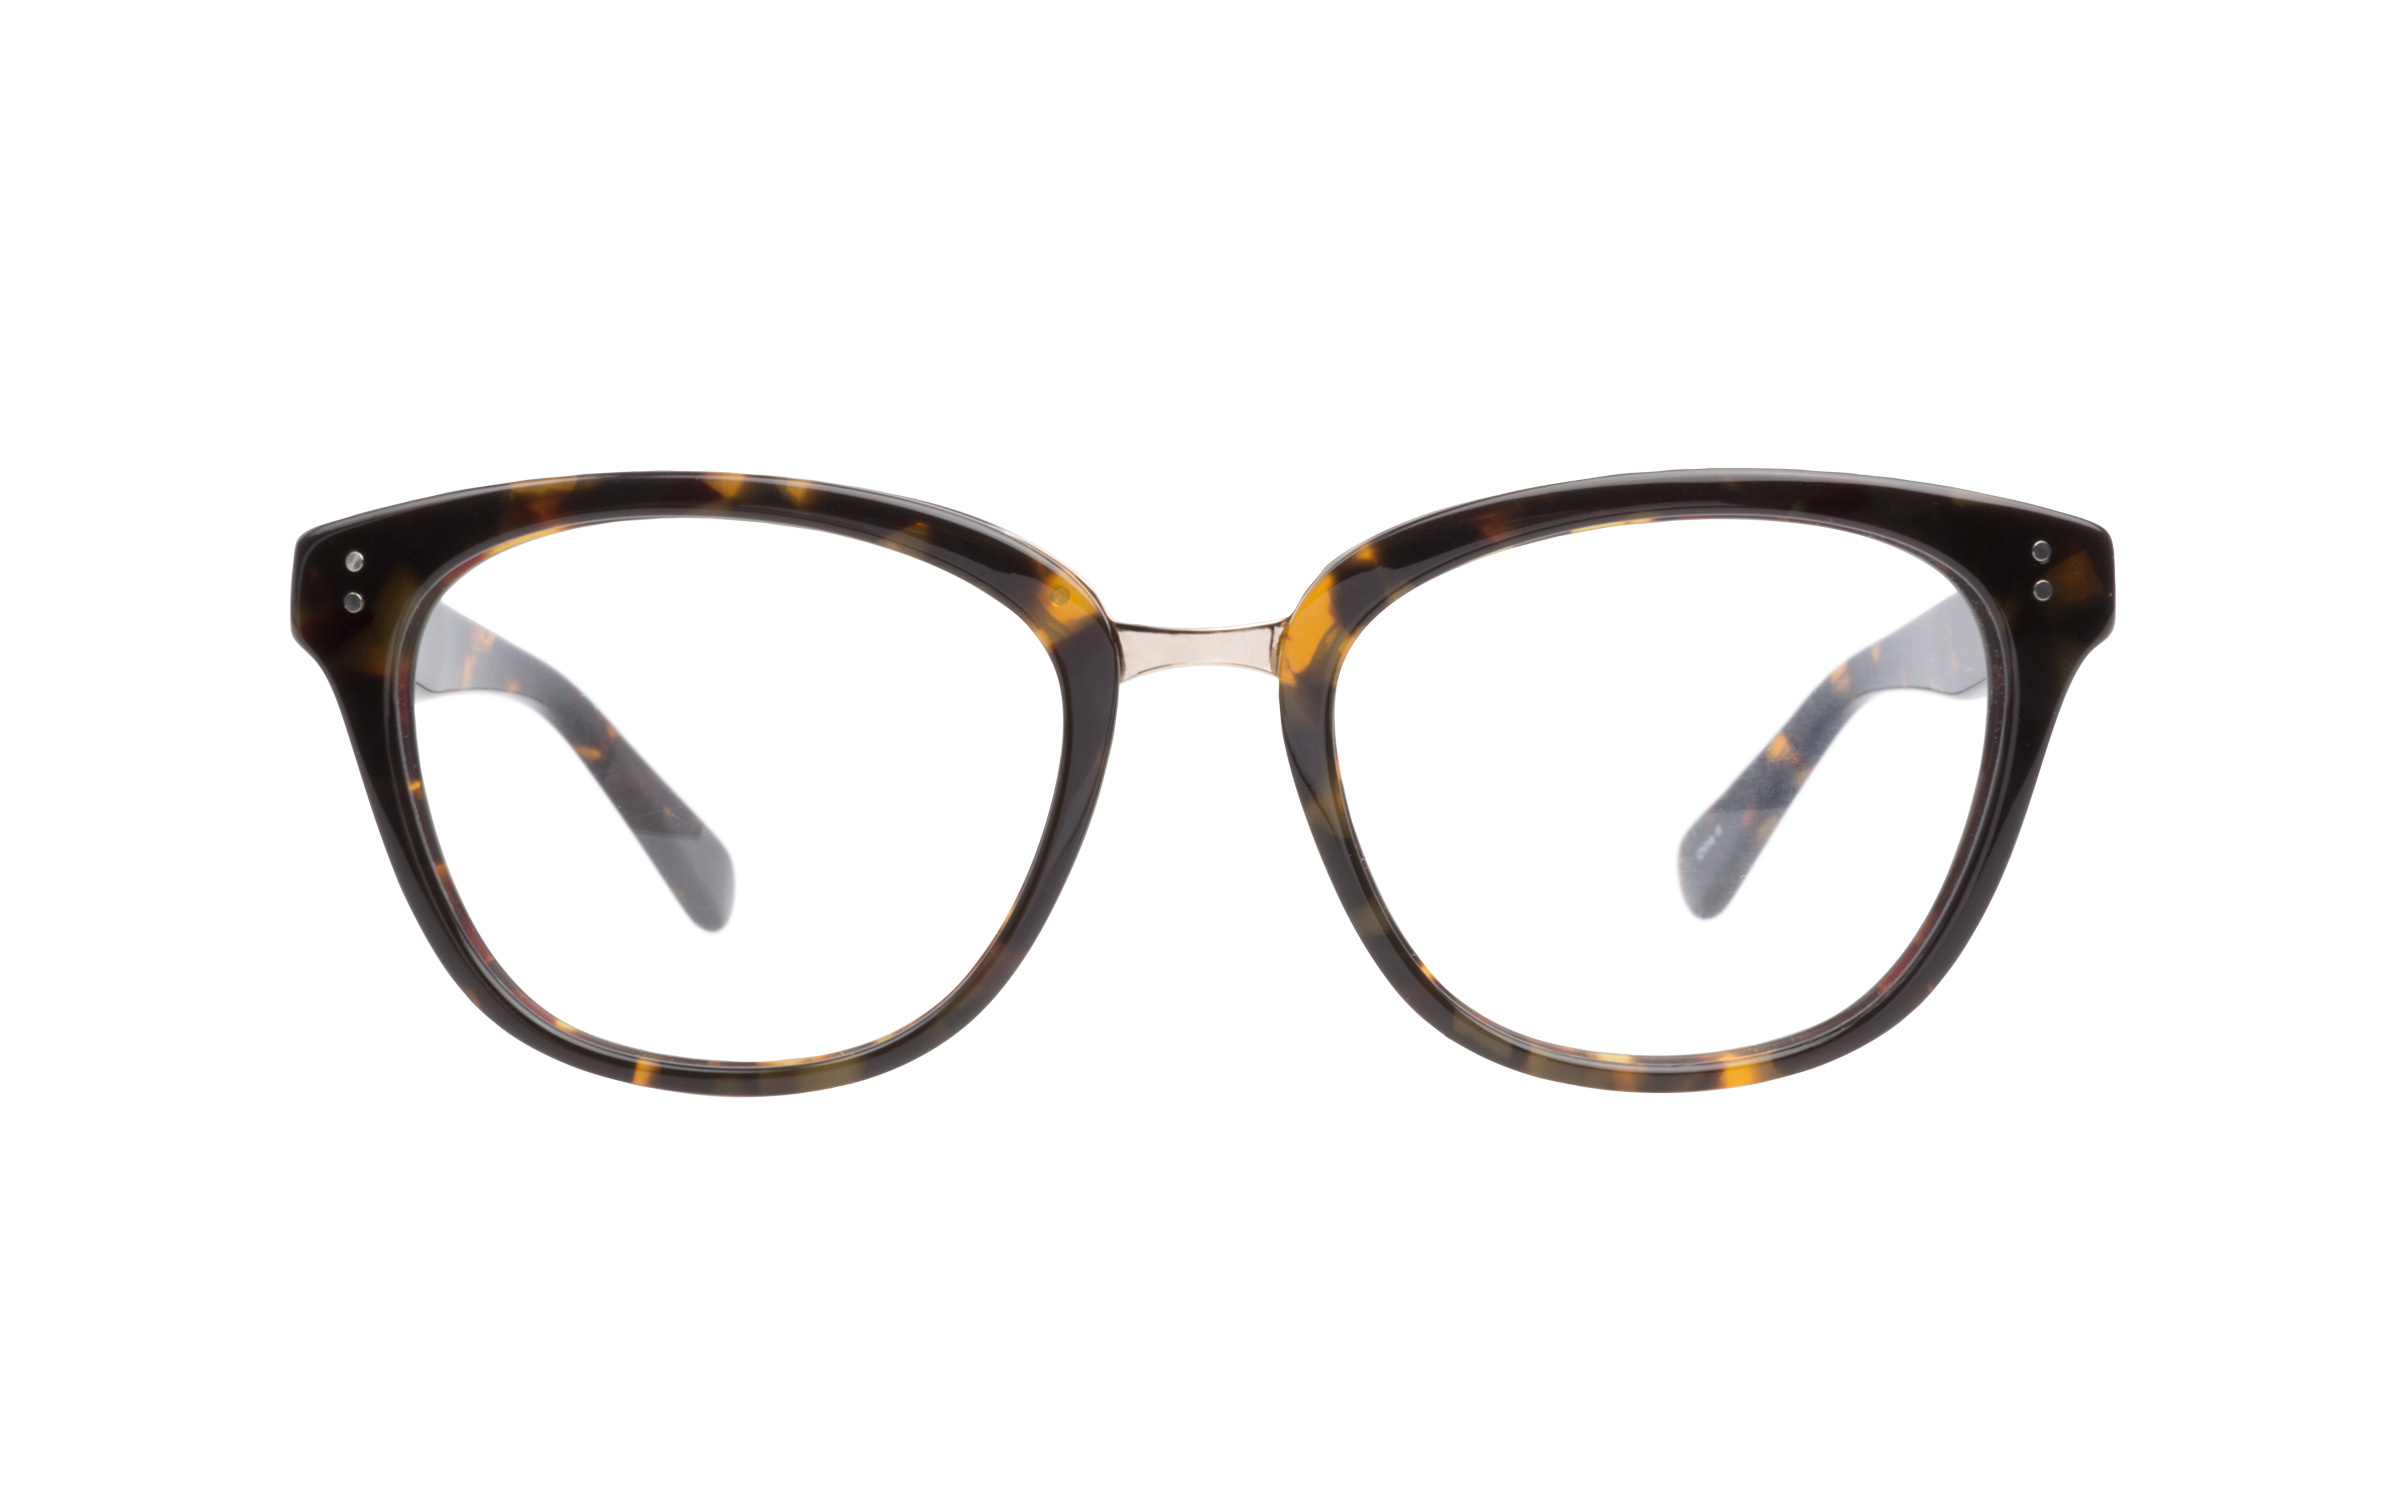 Womens_Clubmaster_Glasses_TortoiseBrown_Kam_Dhillon_Online_Coastal